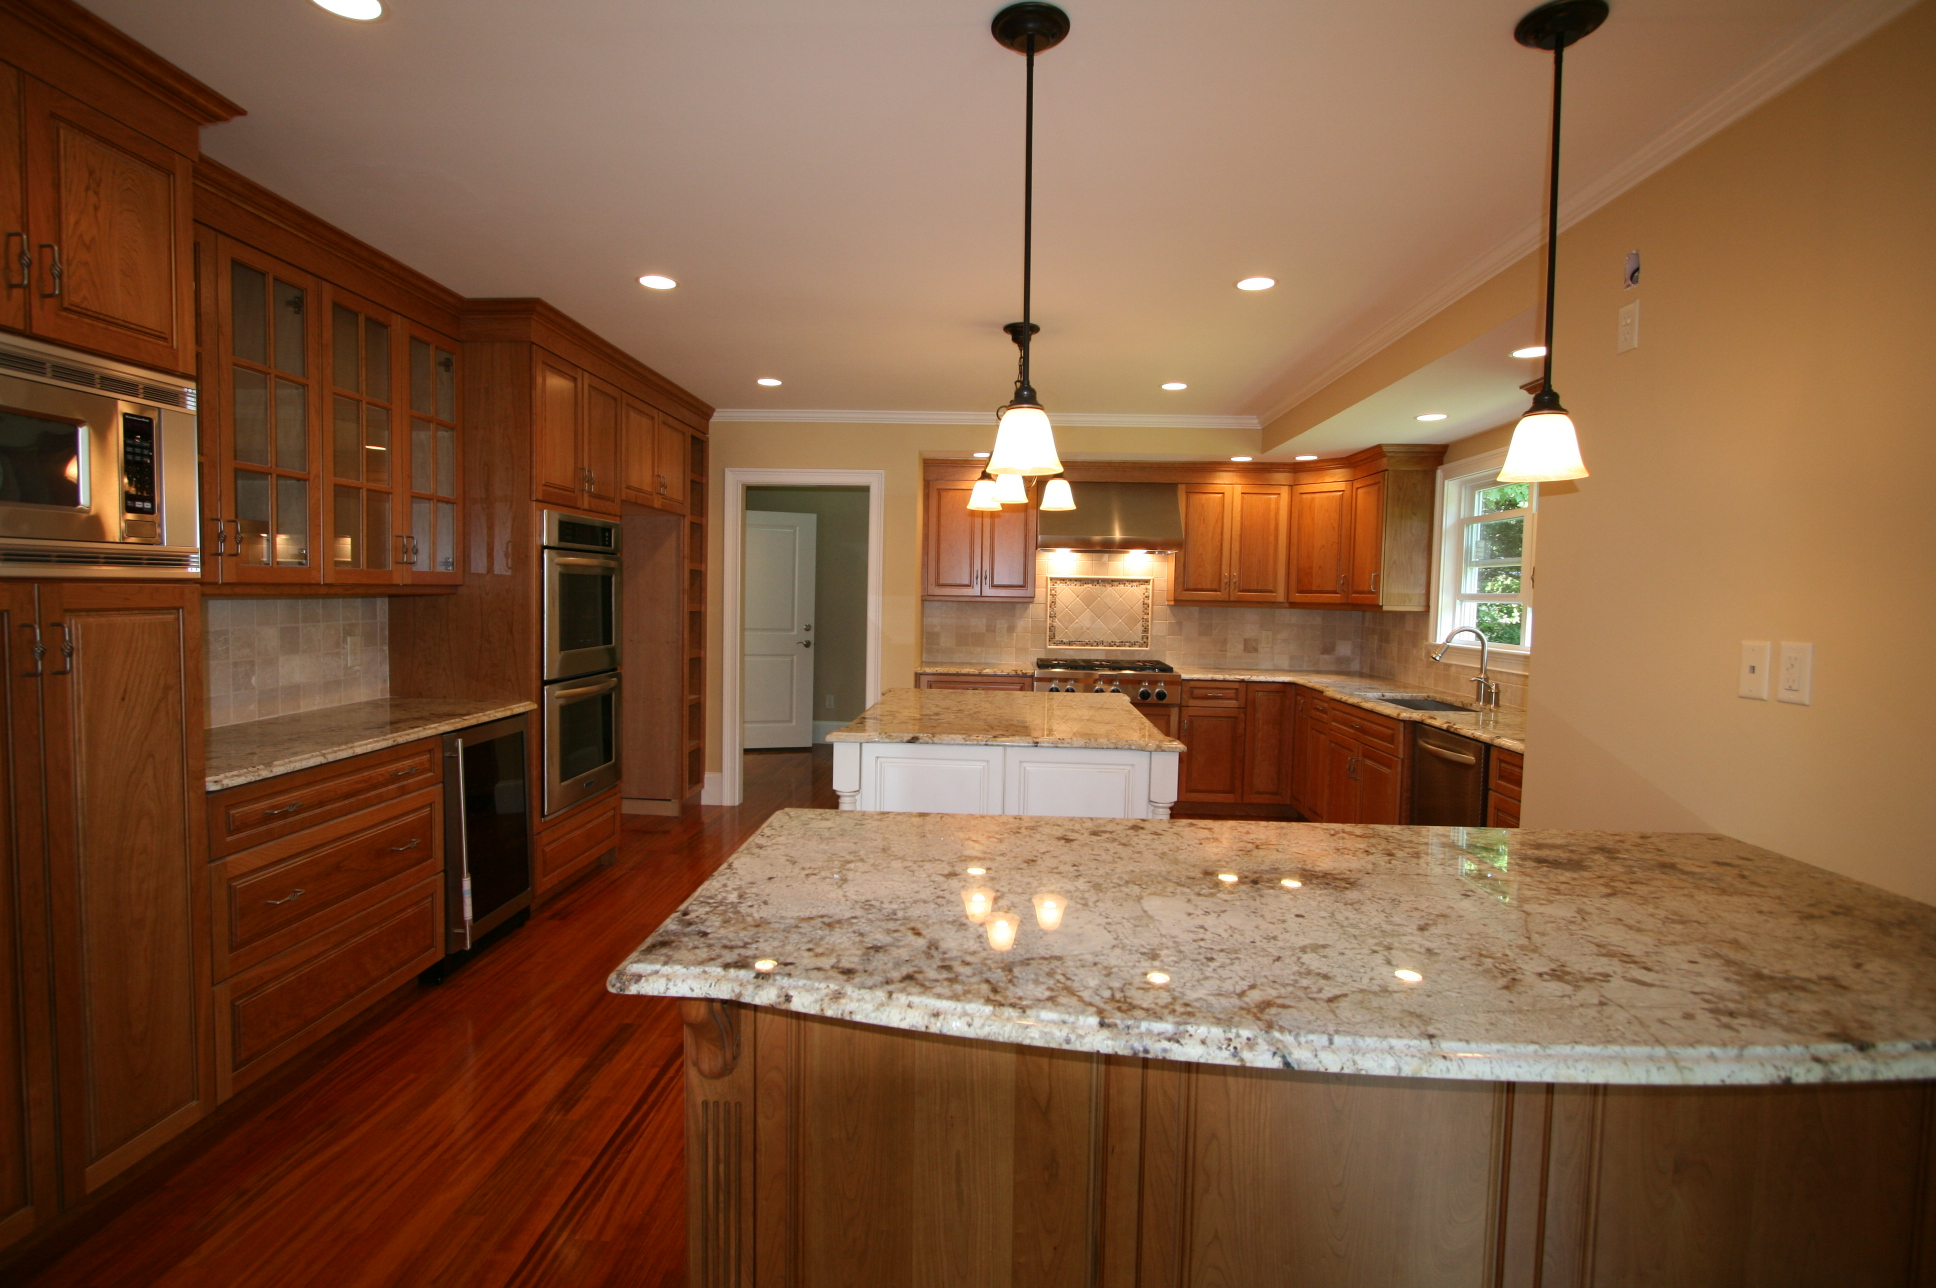 For New Kitchens Halliday Construction Fine Home Building And Remodeling